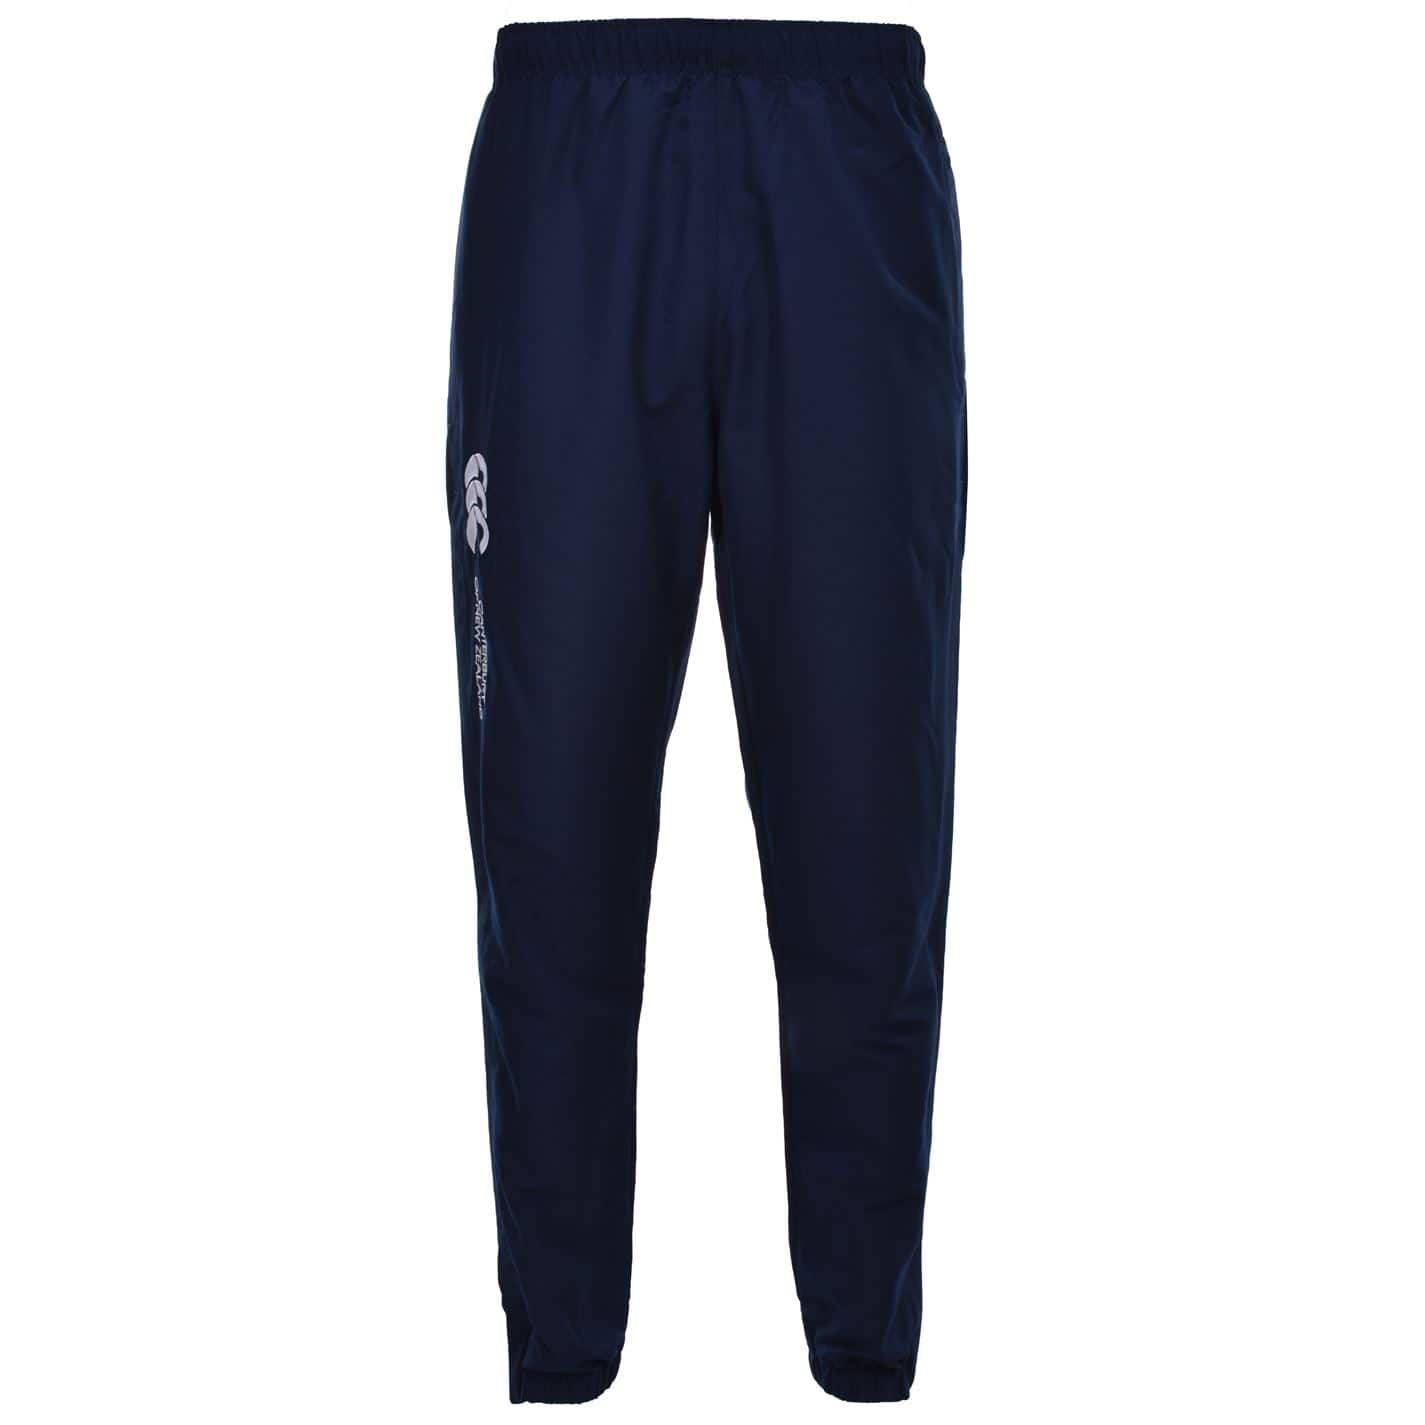 Canterbury-Cuffed-Stadium-Tracksuit-Pants-Mens-Rugby-Sweatpants-Fan-Bottoms thumbnail 8